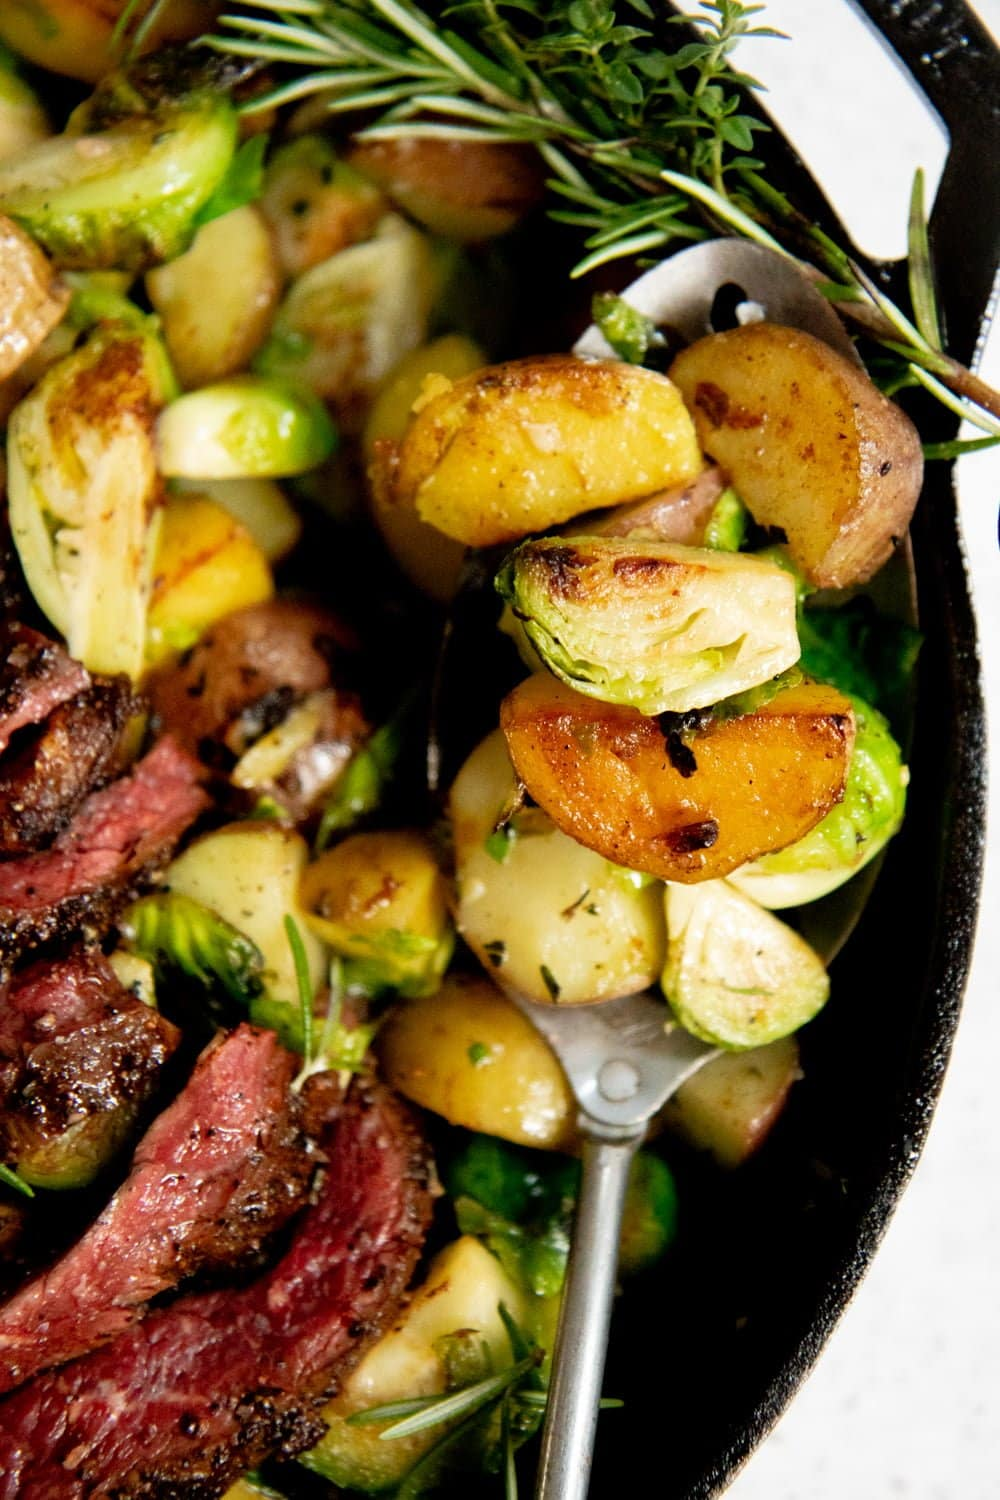 Close-up of cooked potatoes and Brussels sprouts in a cast iron skillet